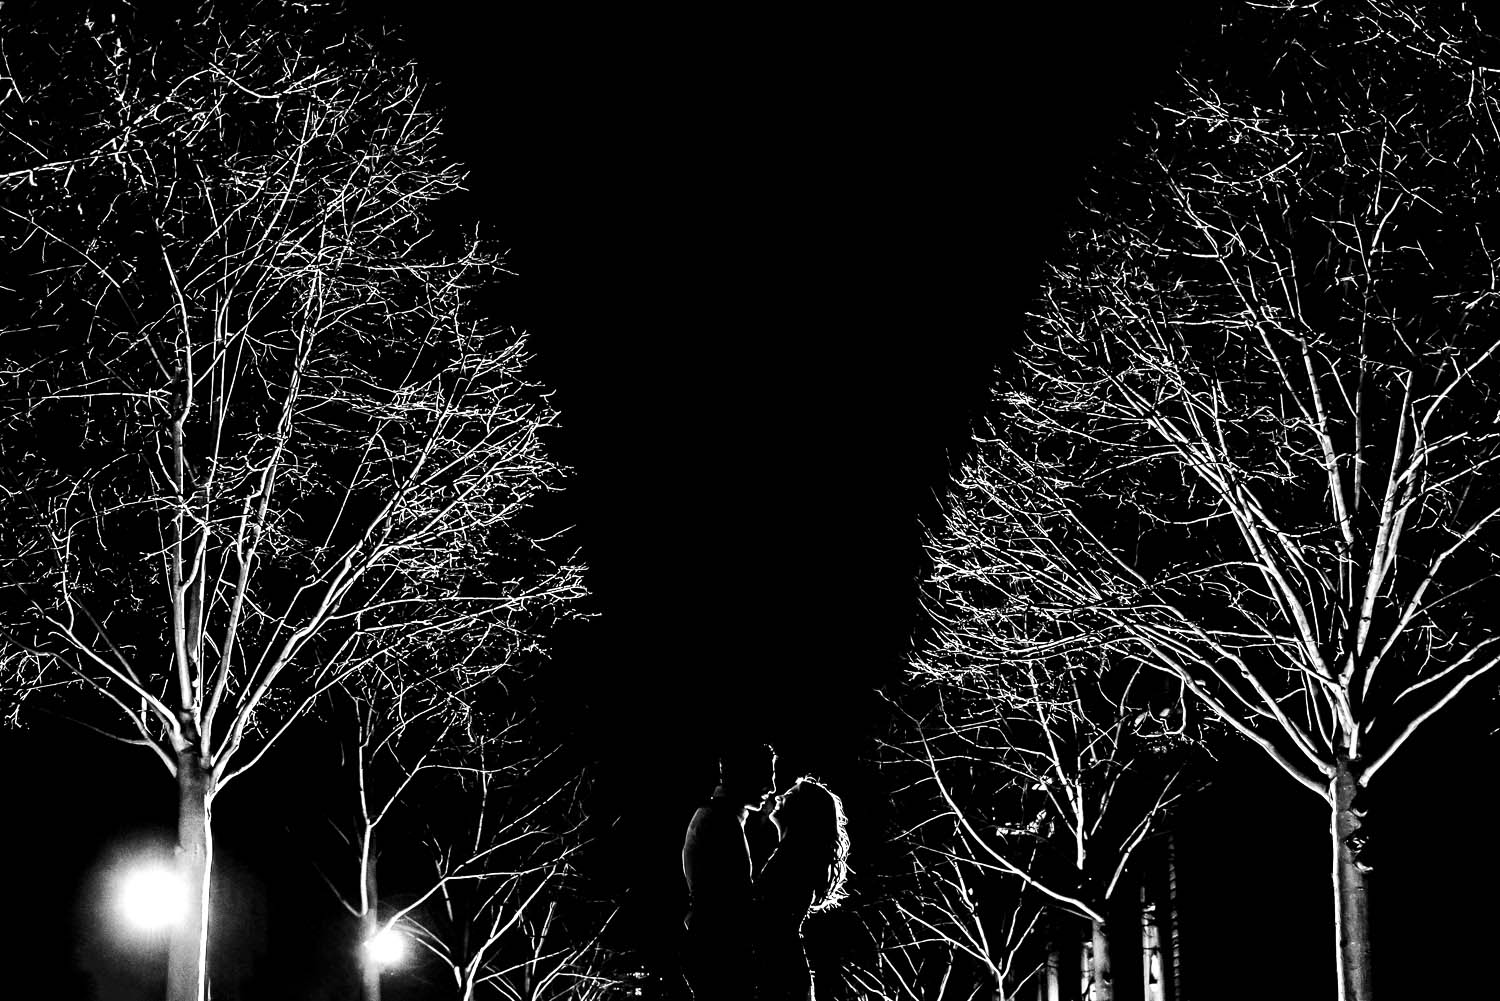 Bride and groom night black and white portrait with trees